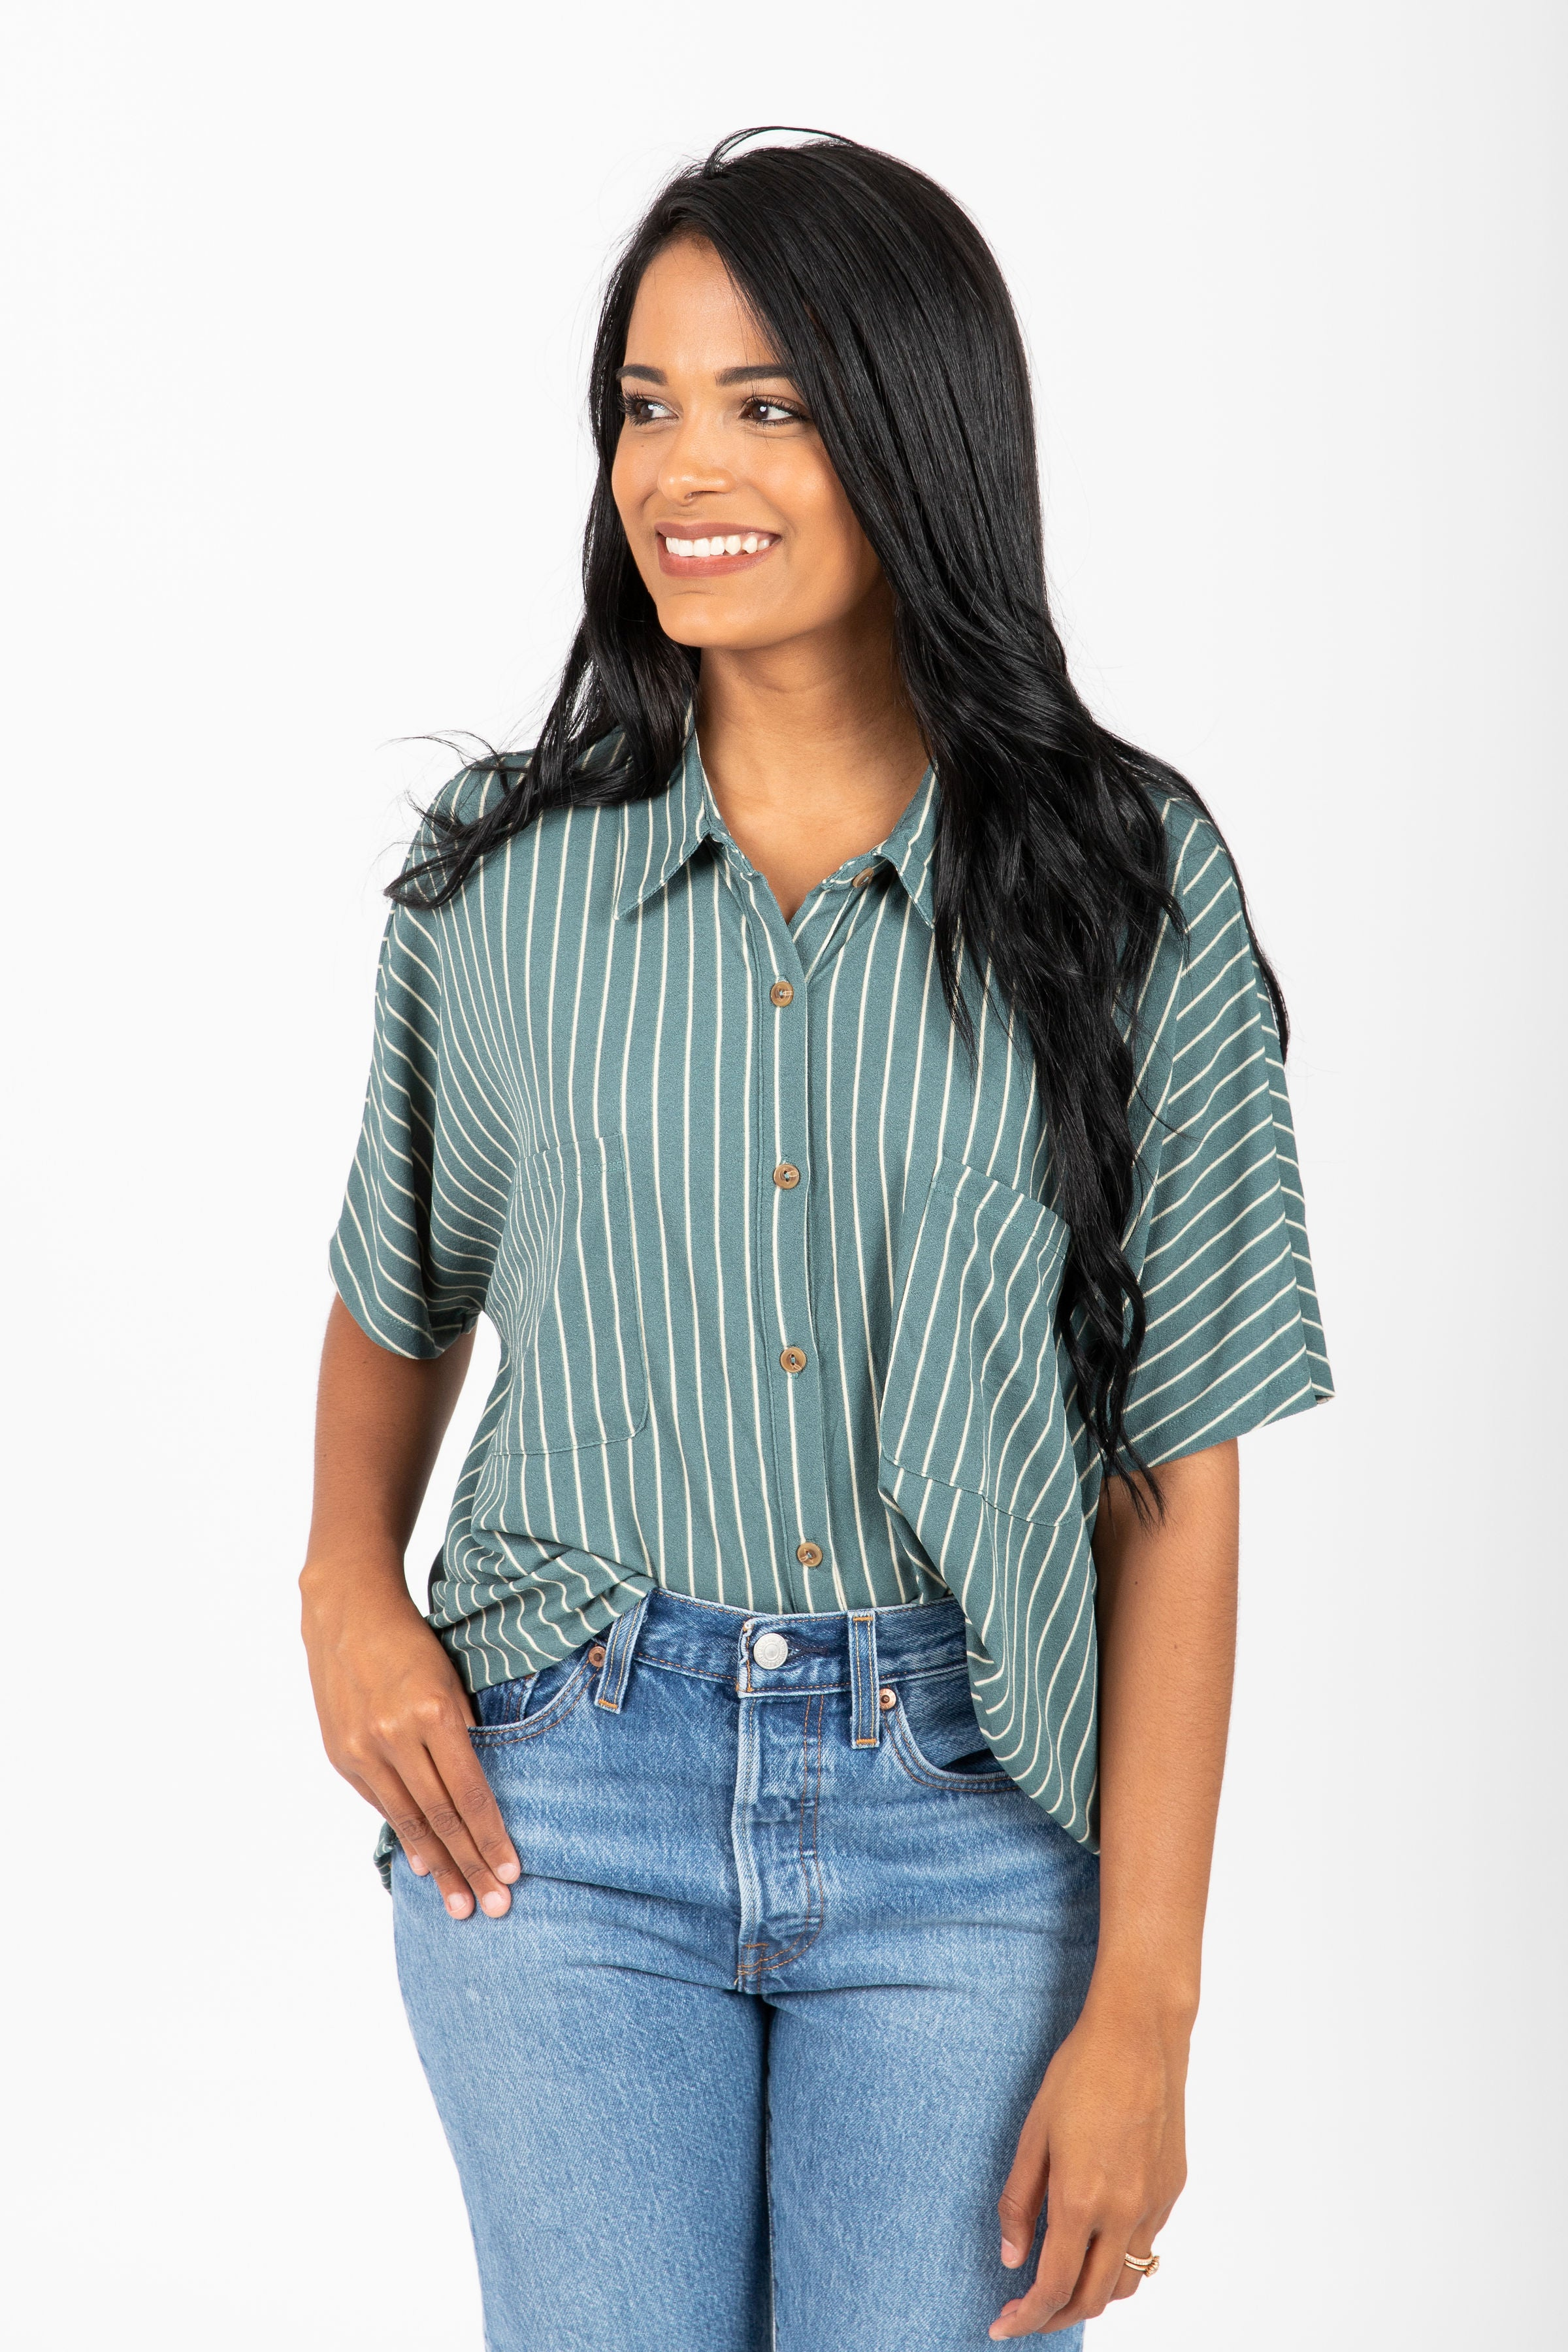 The Heyland Striped Button Up Blouse in Forest